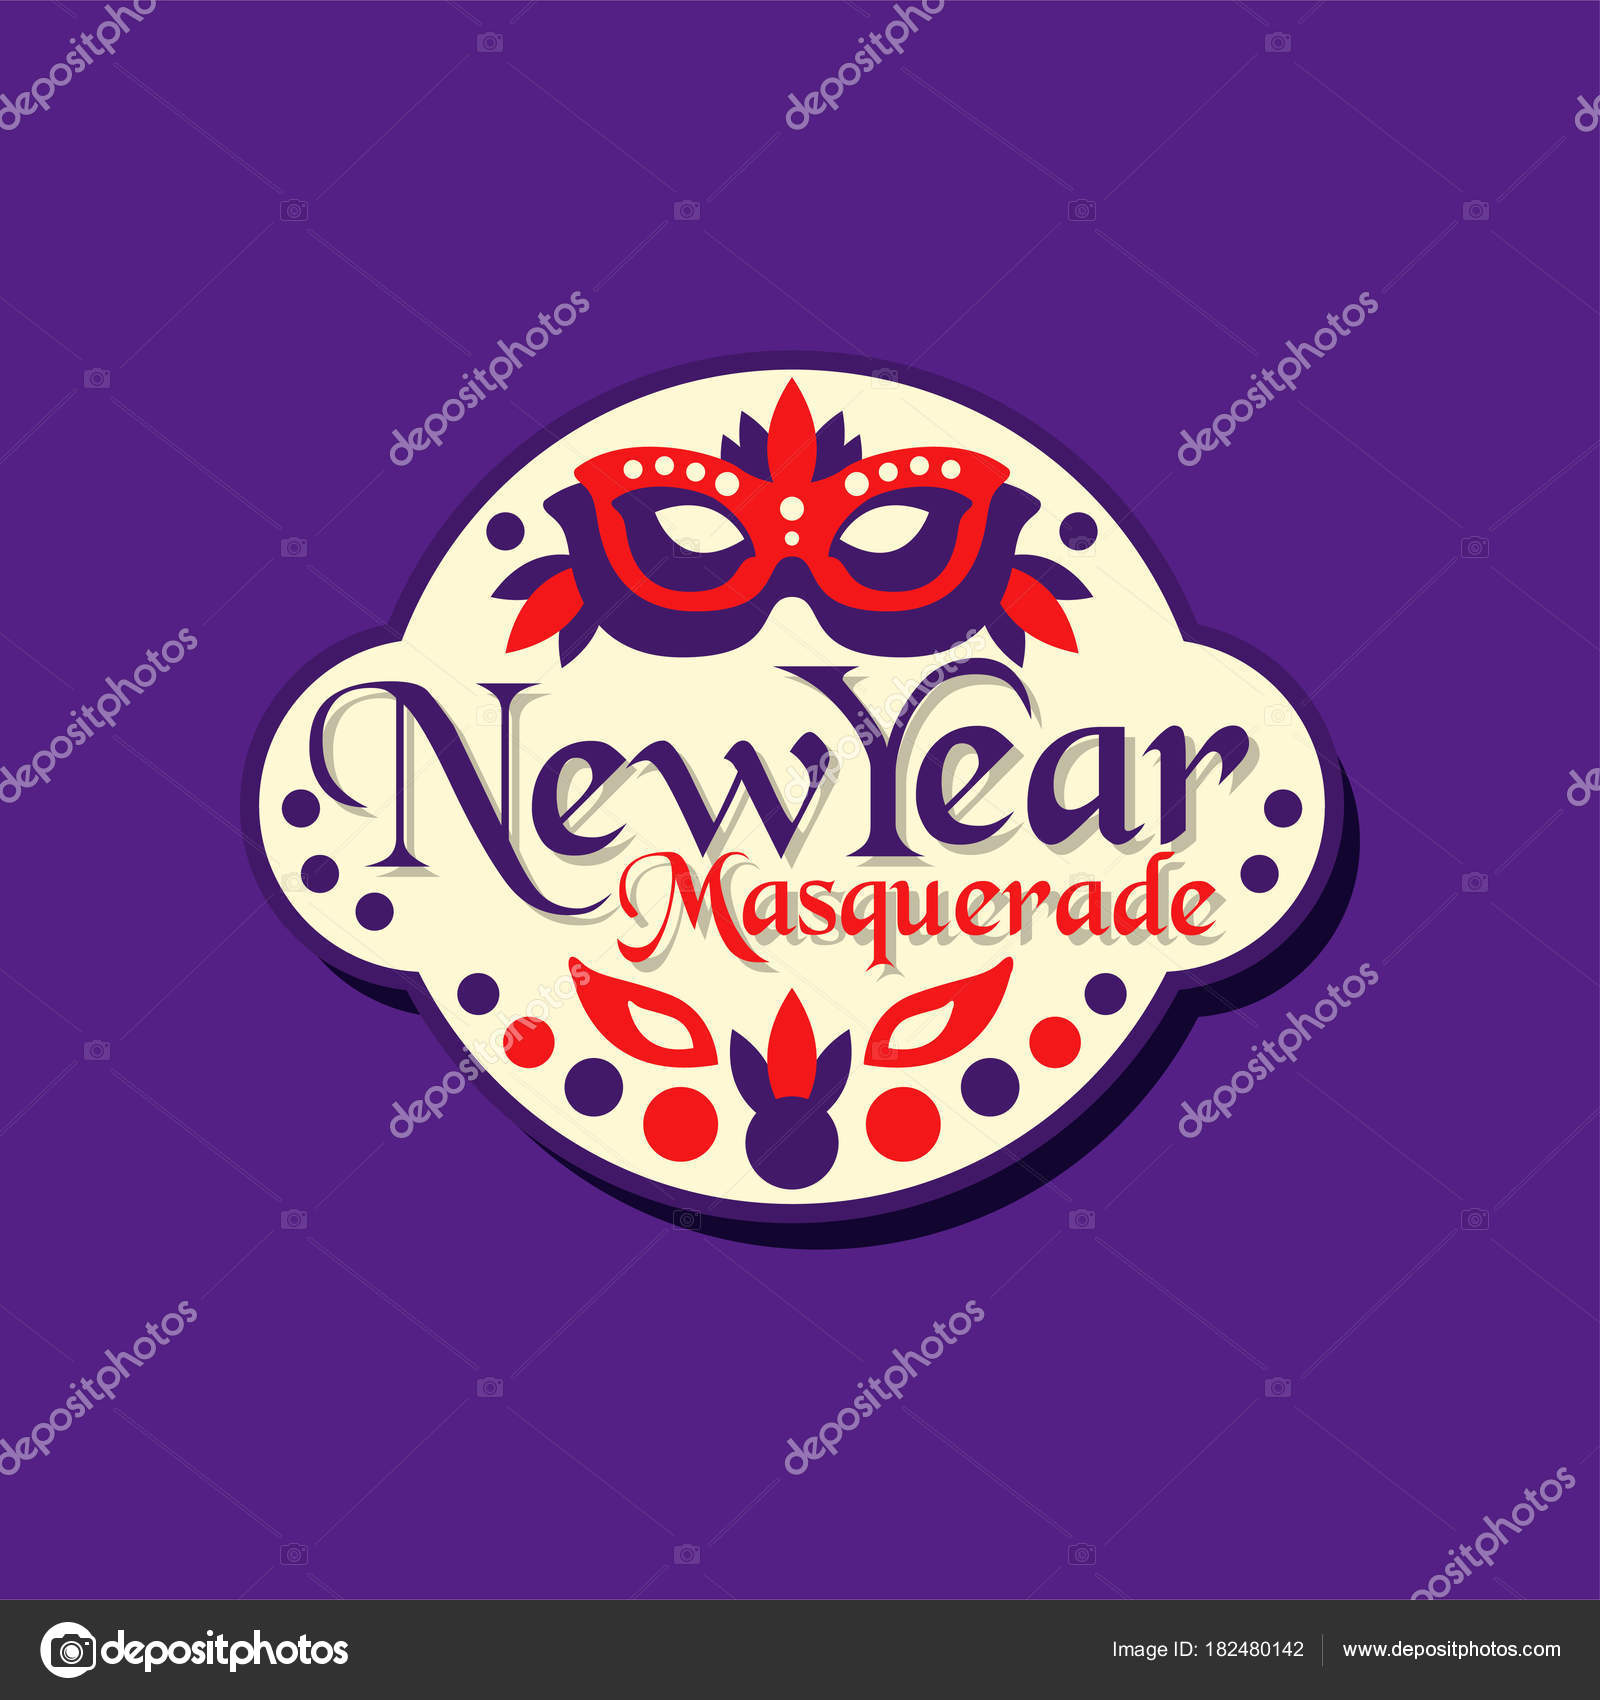 new year masquerade promo sticker invitation for holiday celebration decorated with mask and feathers